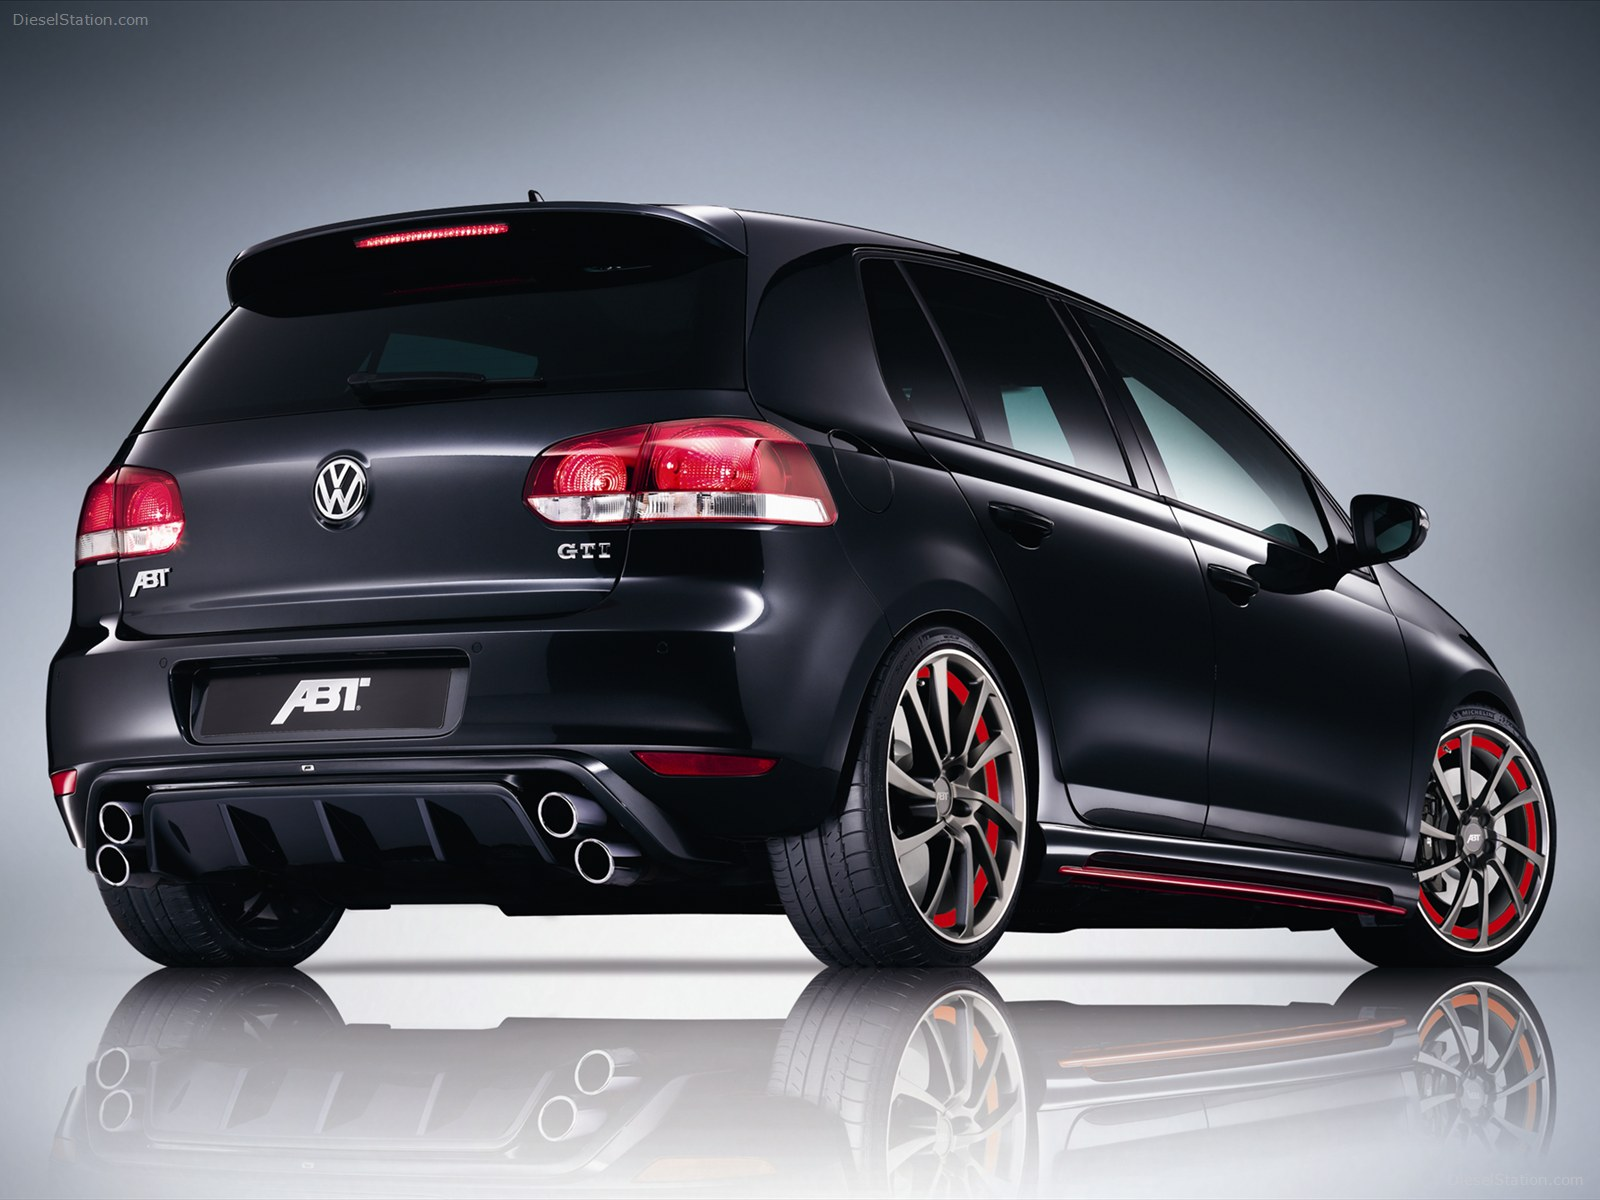 ABT Volkswagen Golf GTI Last Edition 2012 - Car Wallpapers at Dieselstation